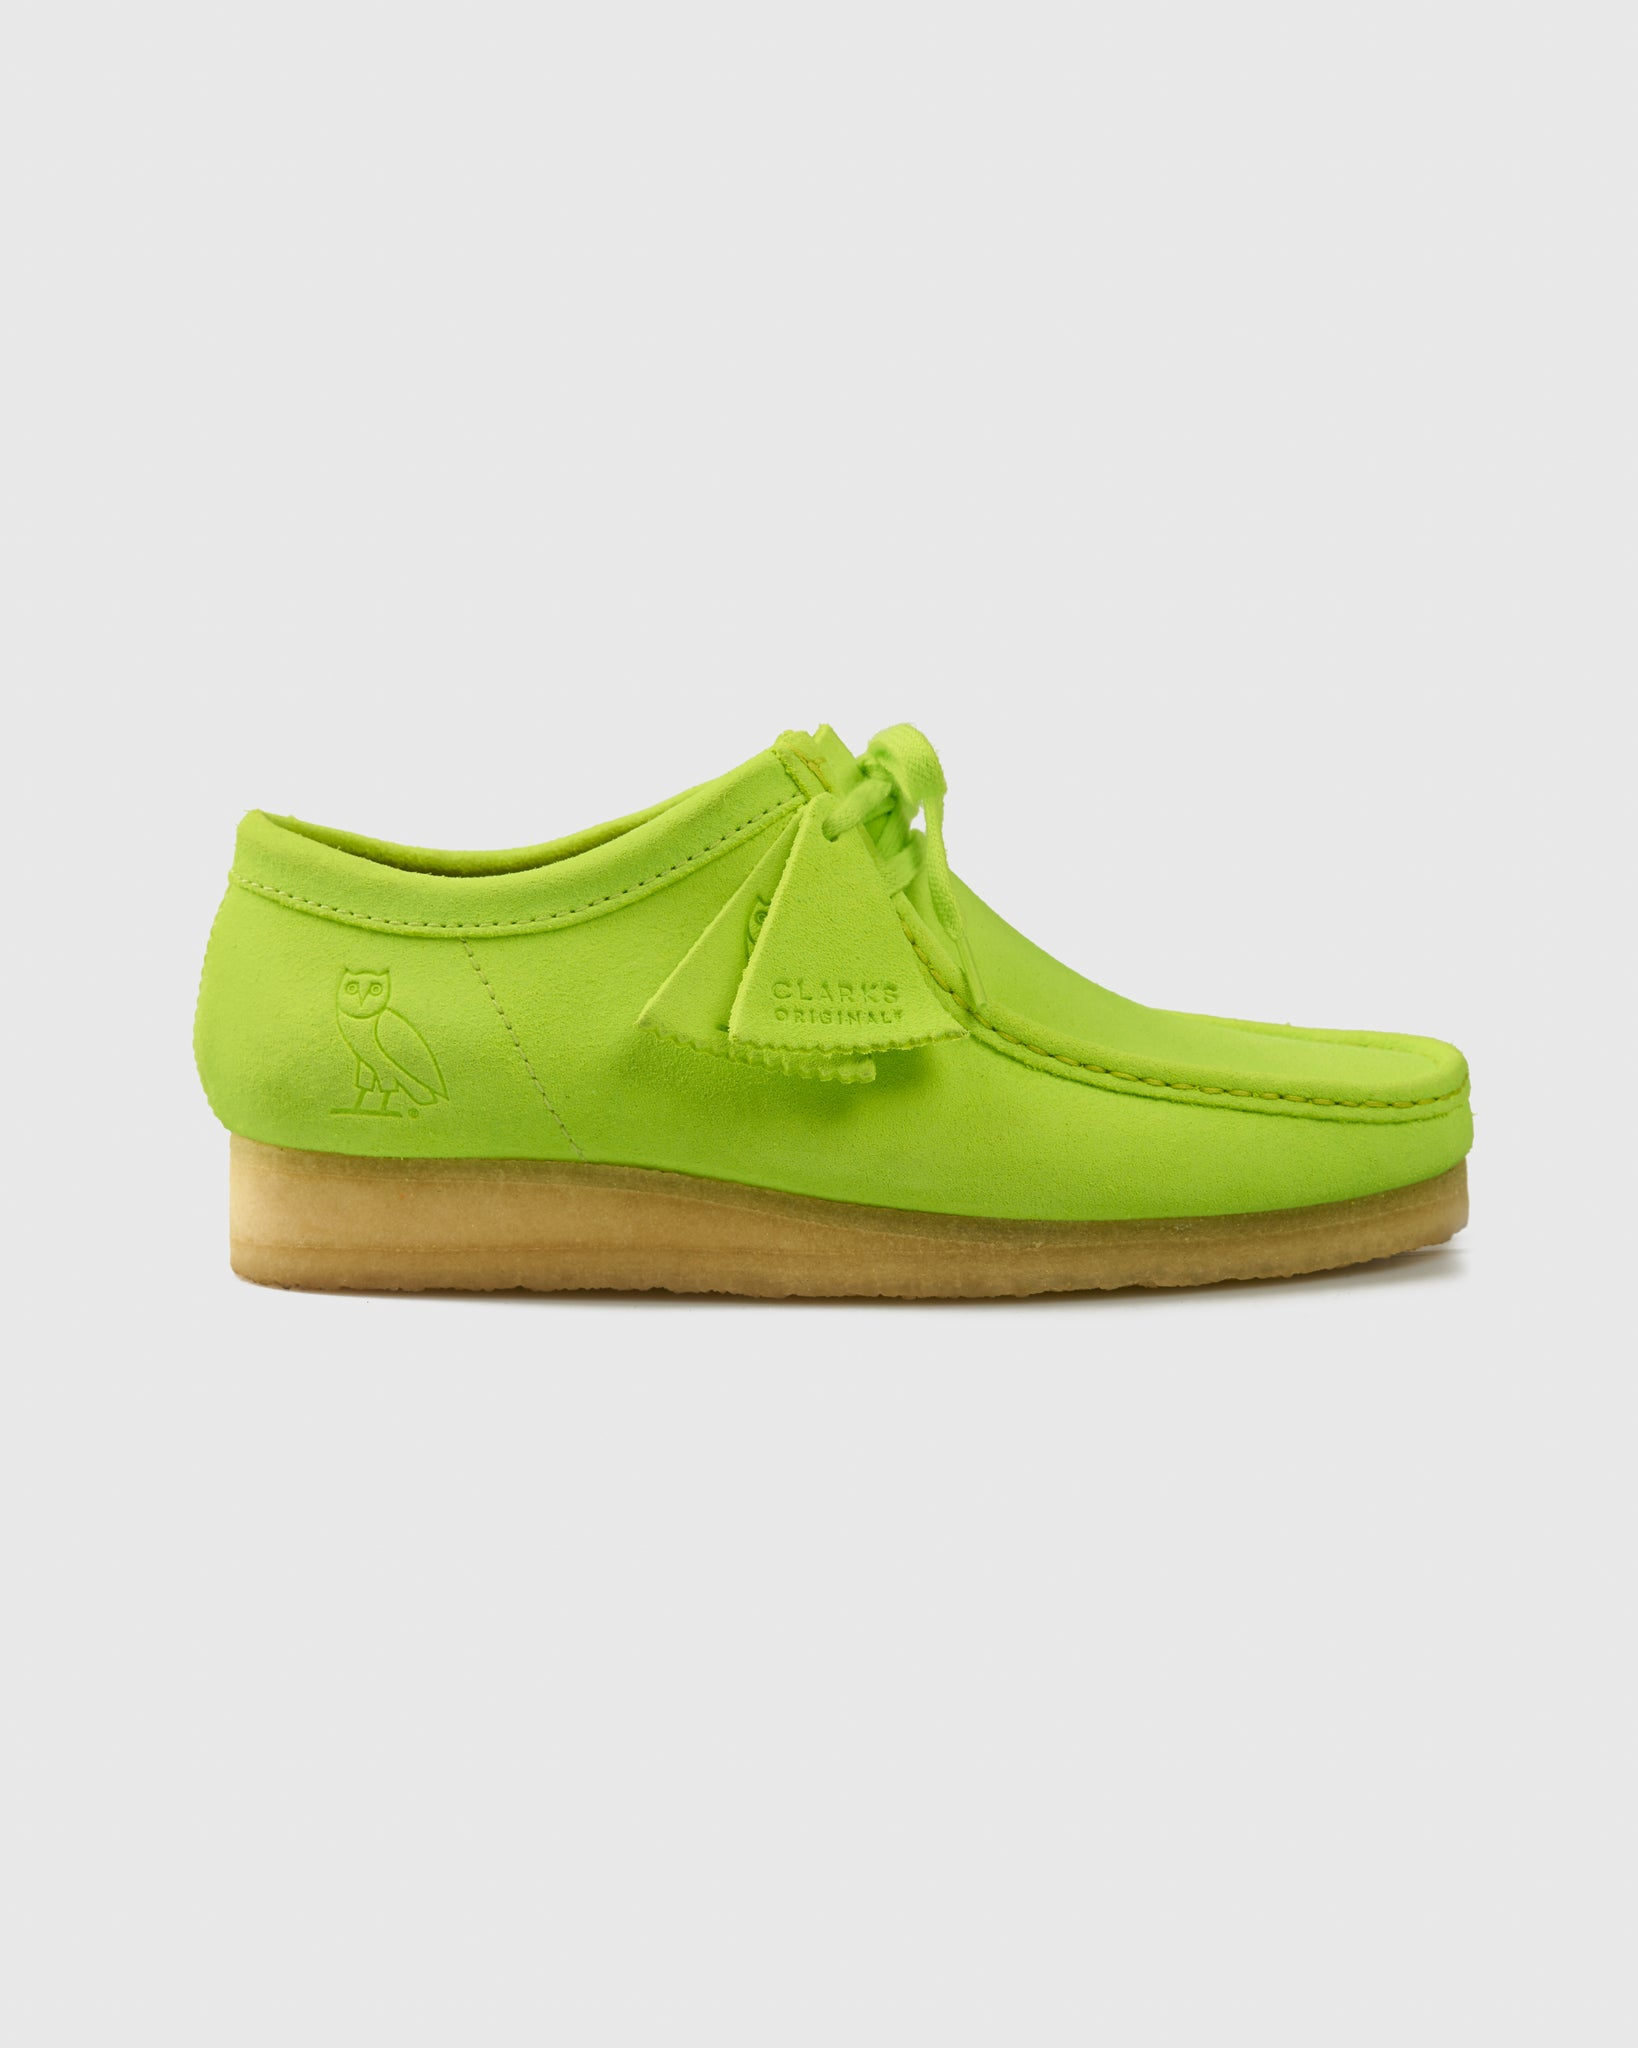 OVO x CLARKS ORIGINALS WALLABEE - LIME IMAGE #1